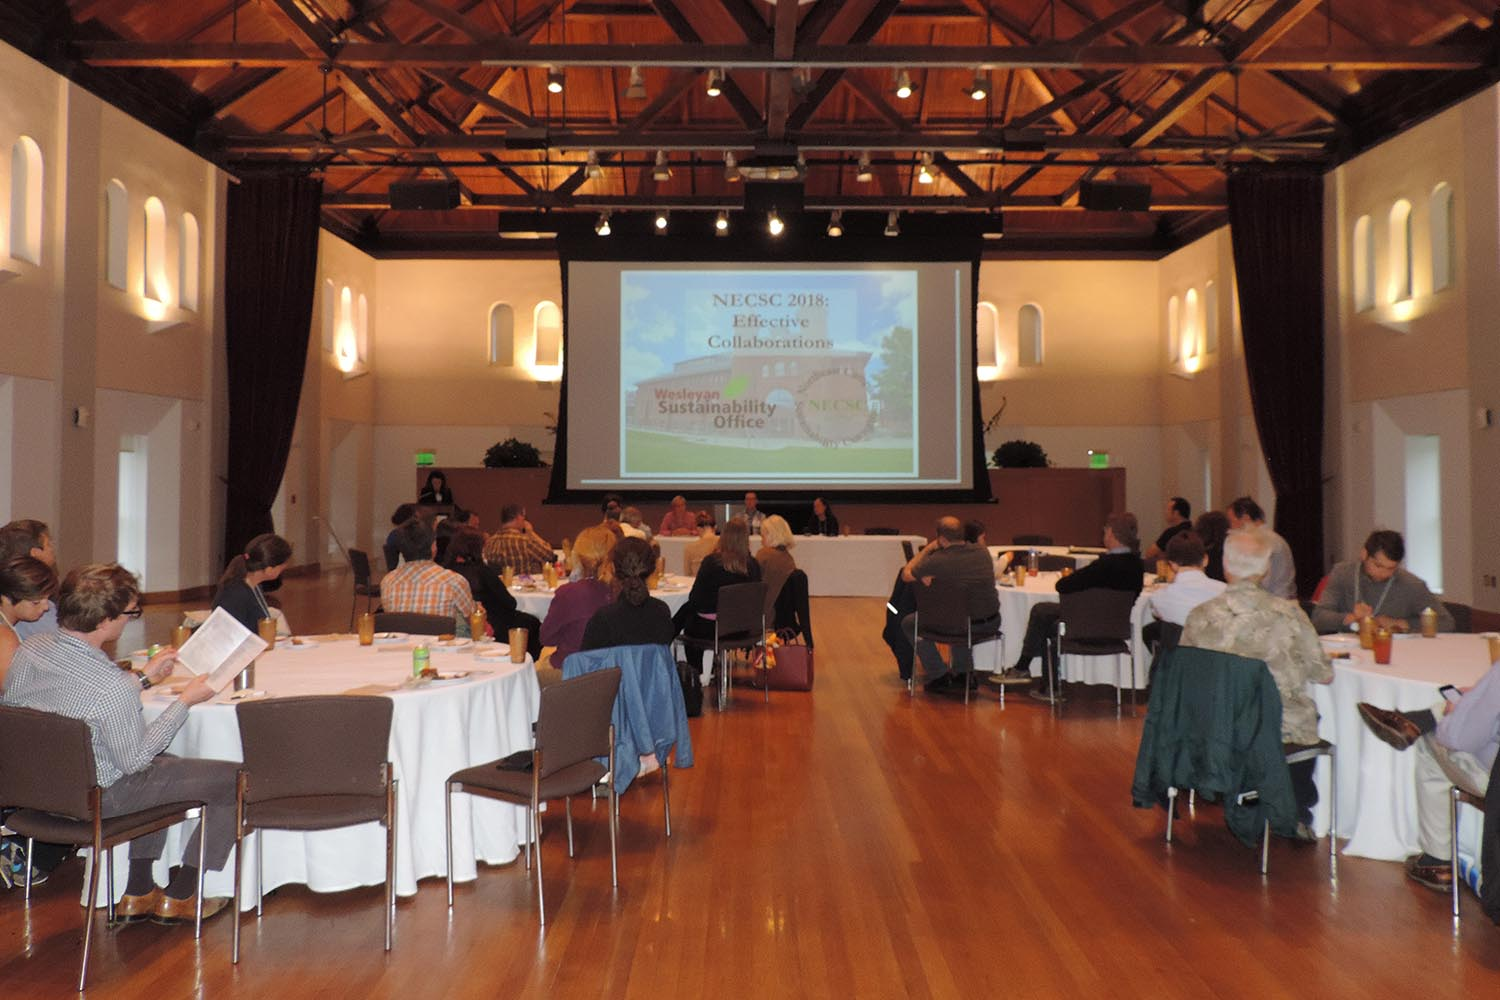 Three Wesleyan employees participated in the Northeast Campus Sustainability Consortium's Annual Meeting June 4-5. The meeting focused on effective collaborations within campus, between campuses, and between campus and community.